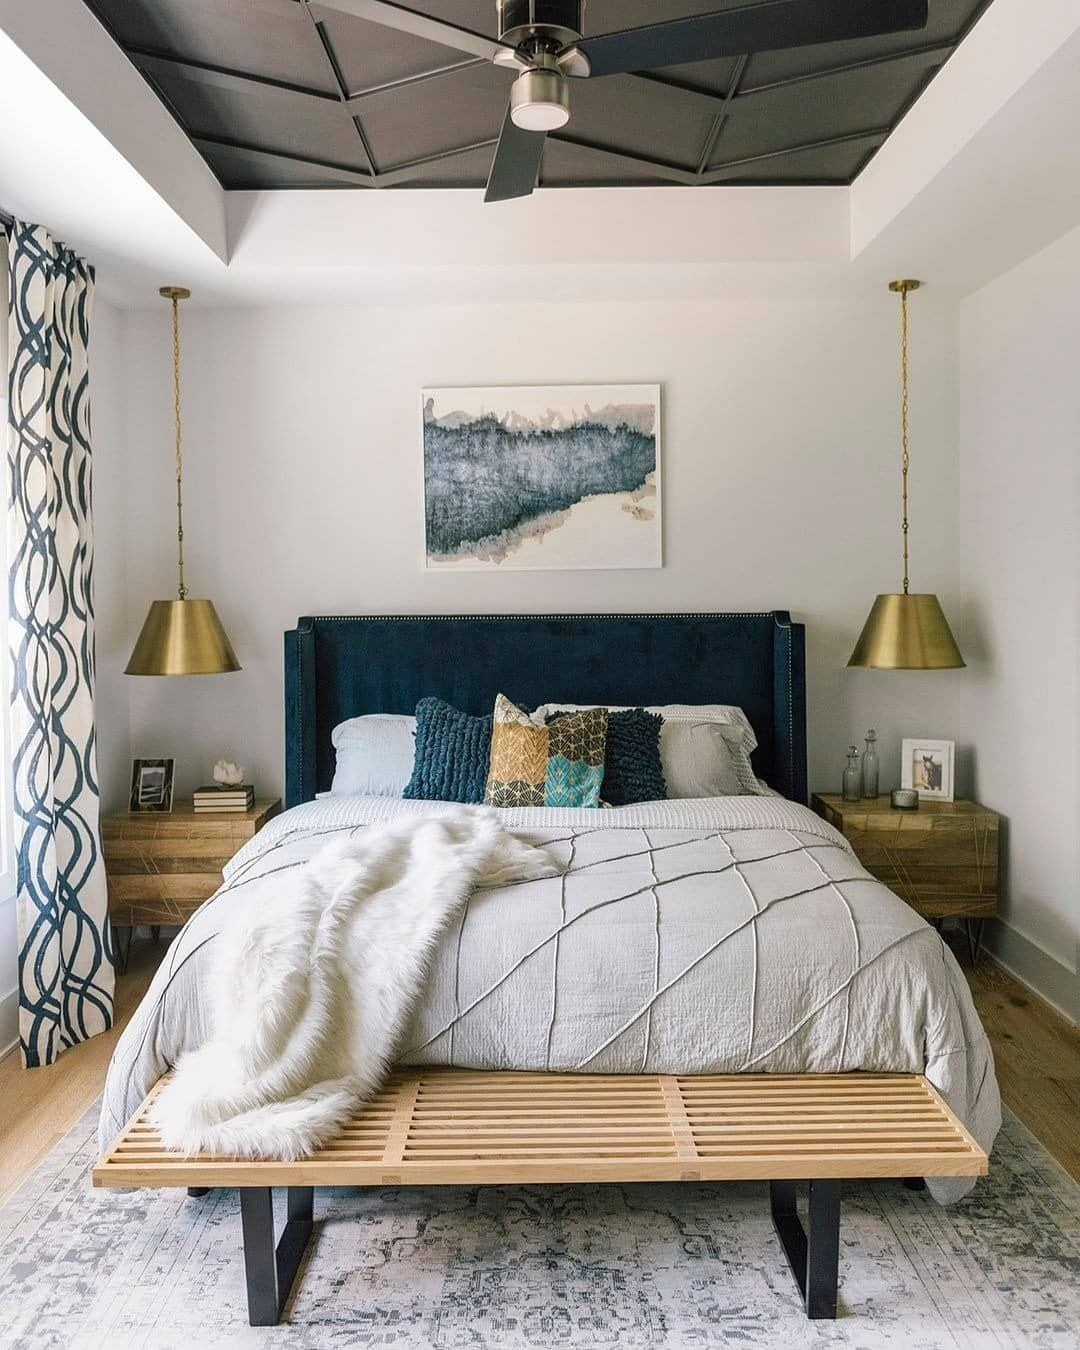 Serie 7 On Instagram The Power Of Cushions They Are Pretty Fluffy And Invite You To Jump Into Bed But Bedroom Interior Bedroom Decor Bedroom Inspirations